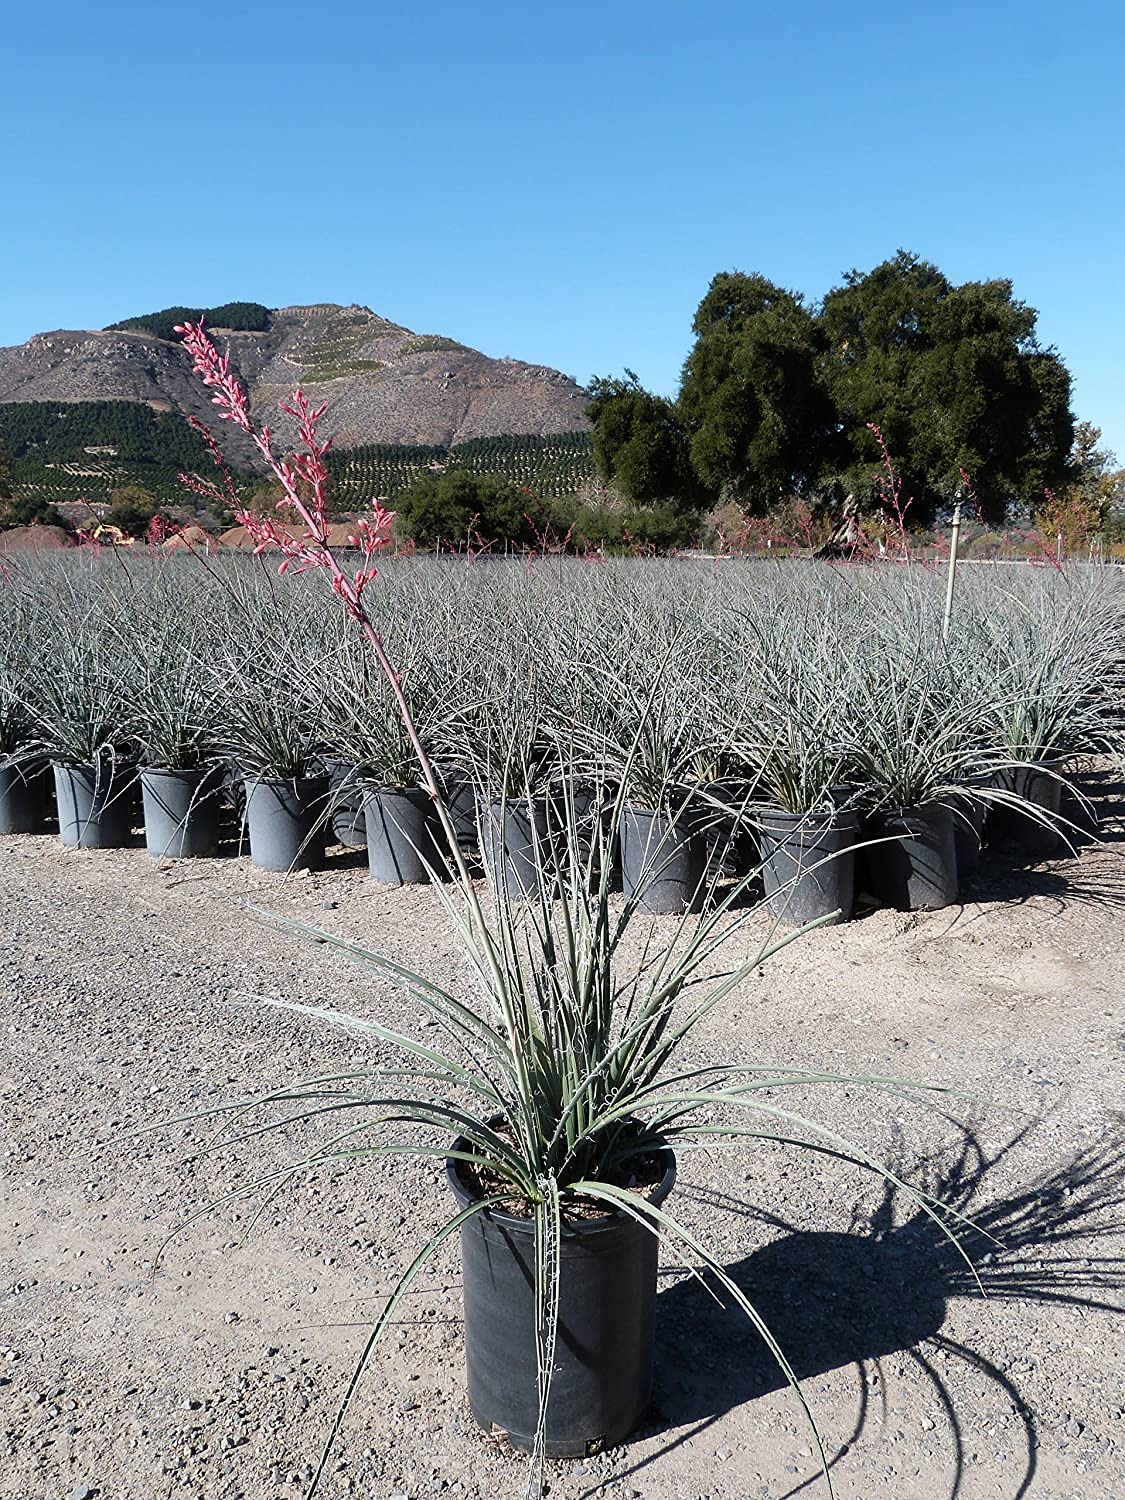 Red Yucca Aka Hesperaloe Parviflora Live Popularity Limited time sale 01 Fit Plant Succulent